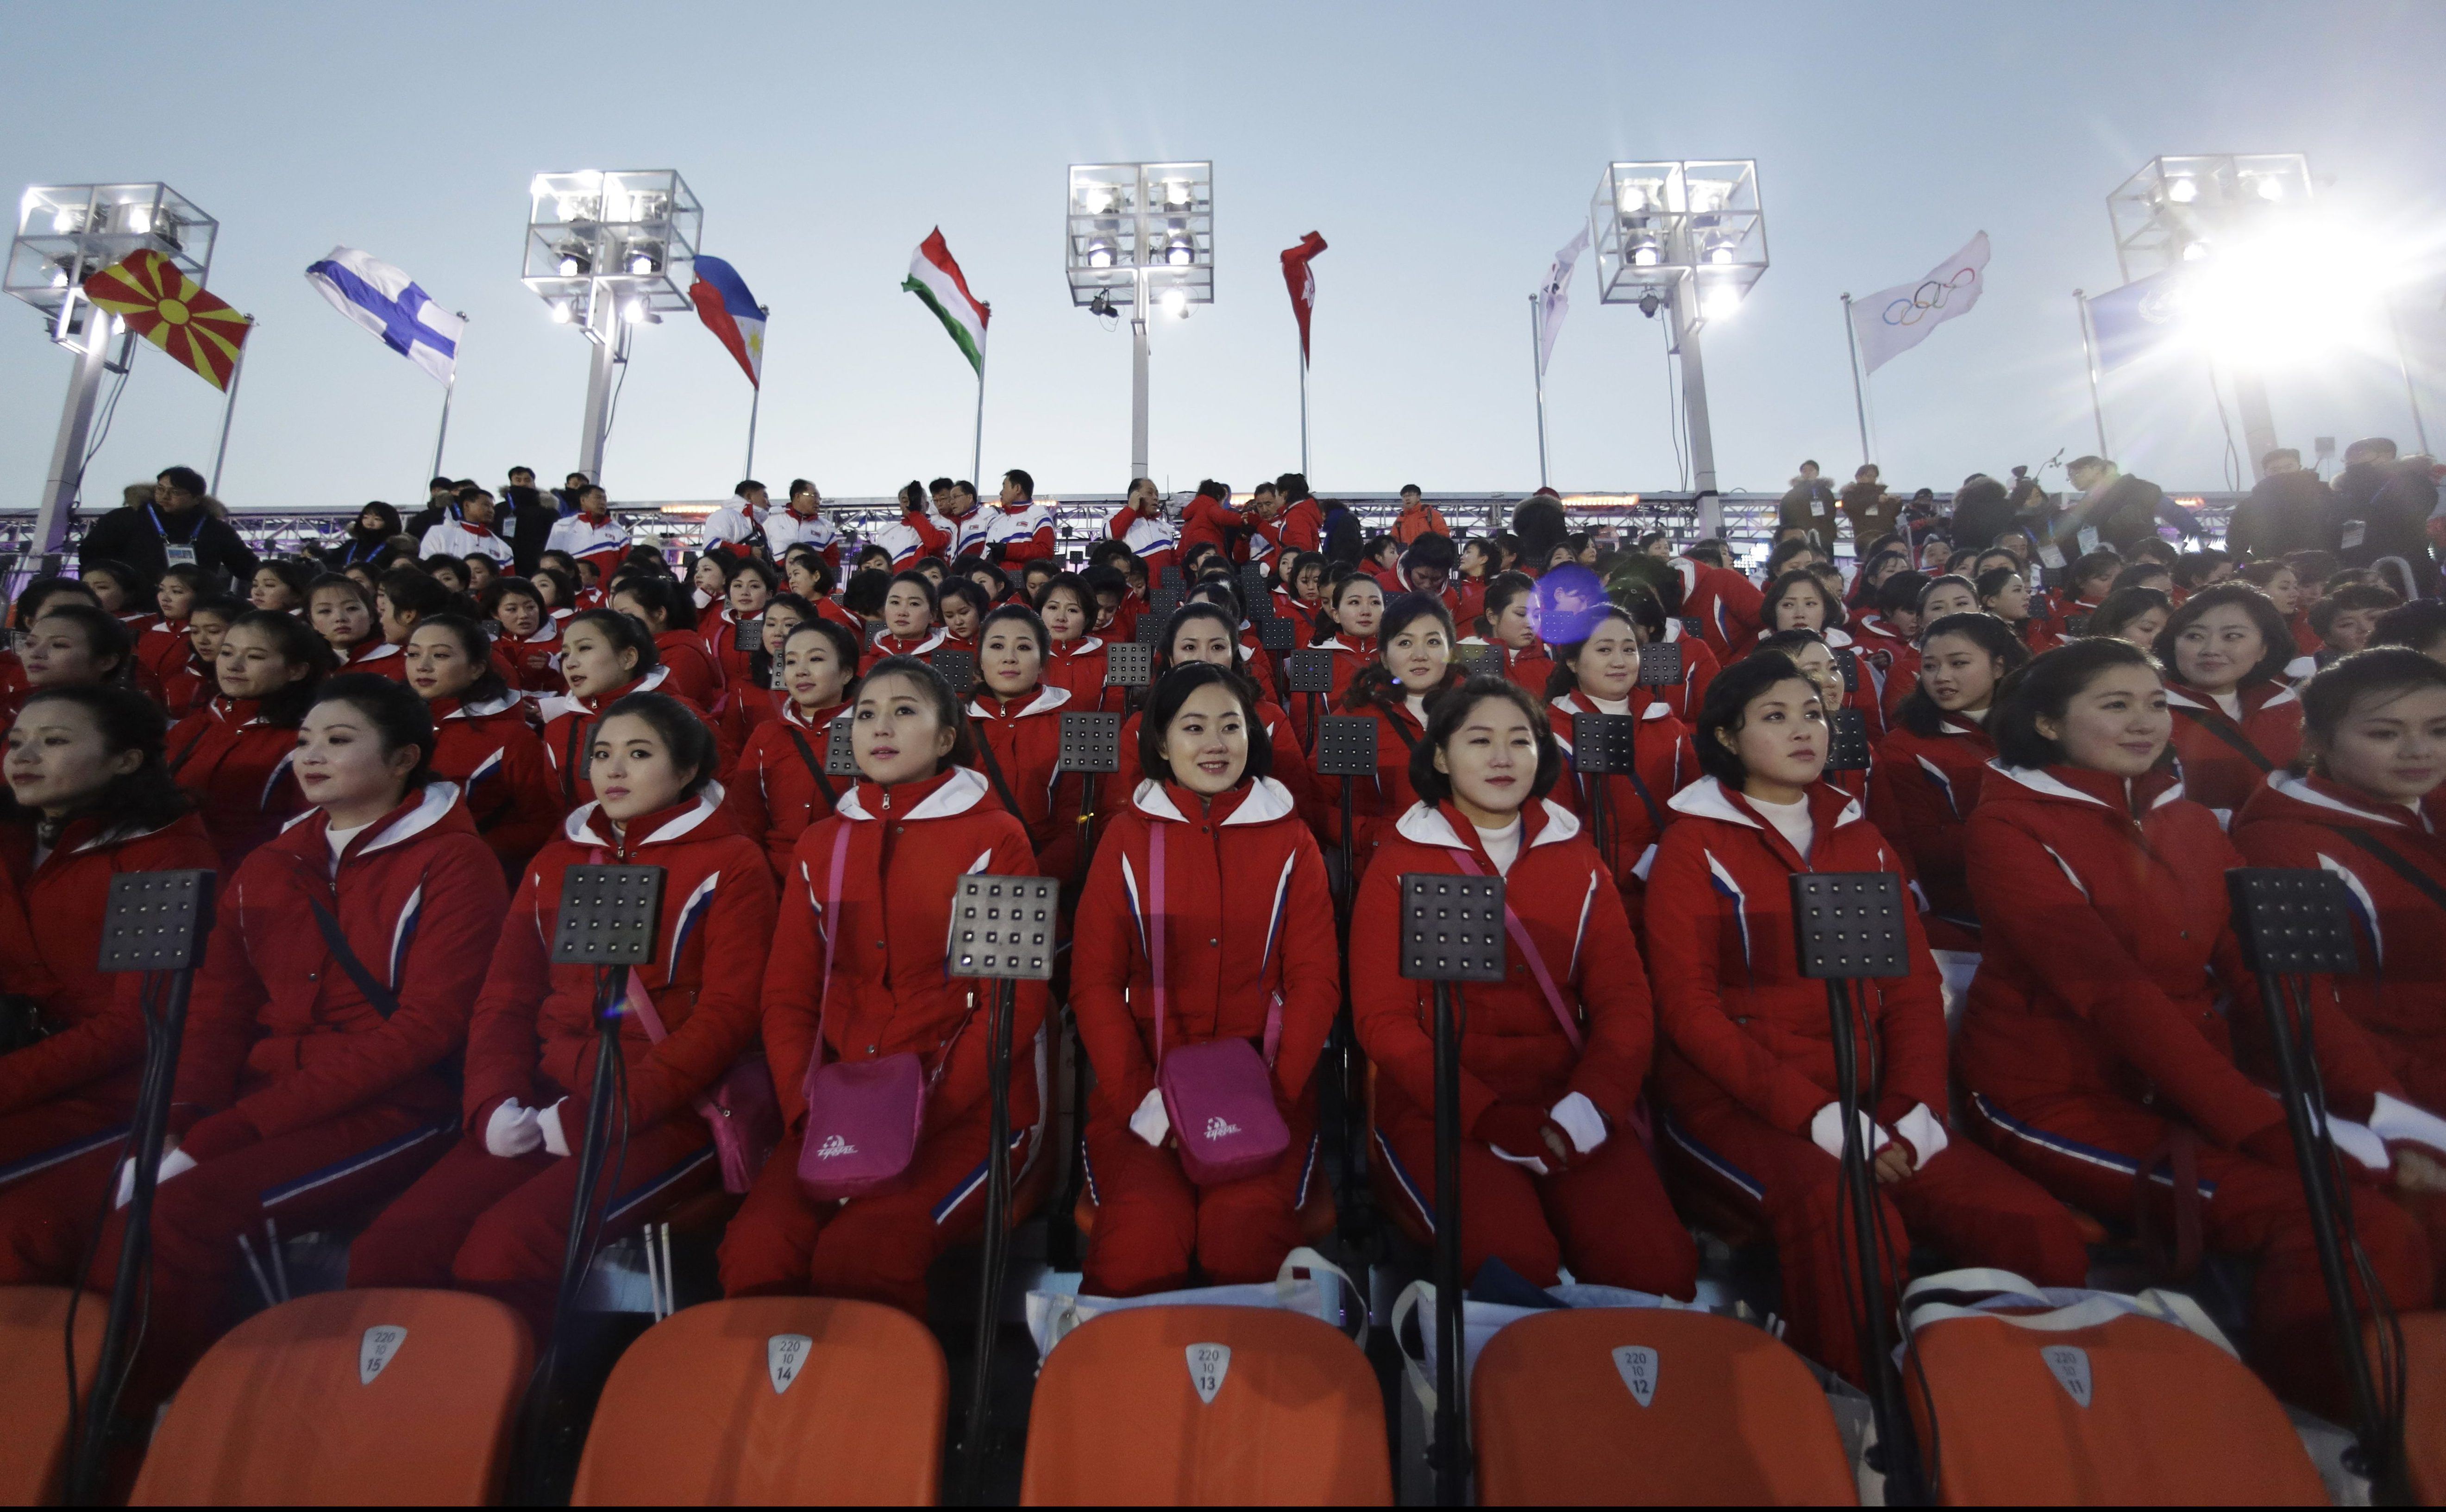 Members of the North Korean delegation at the opening ceremony.